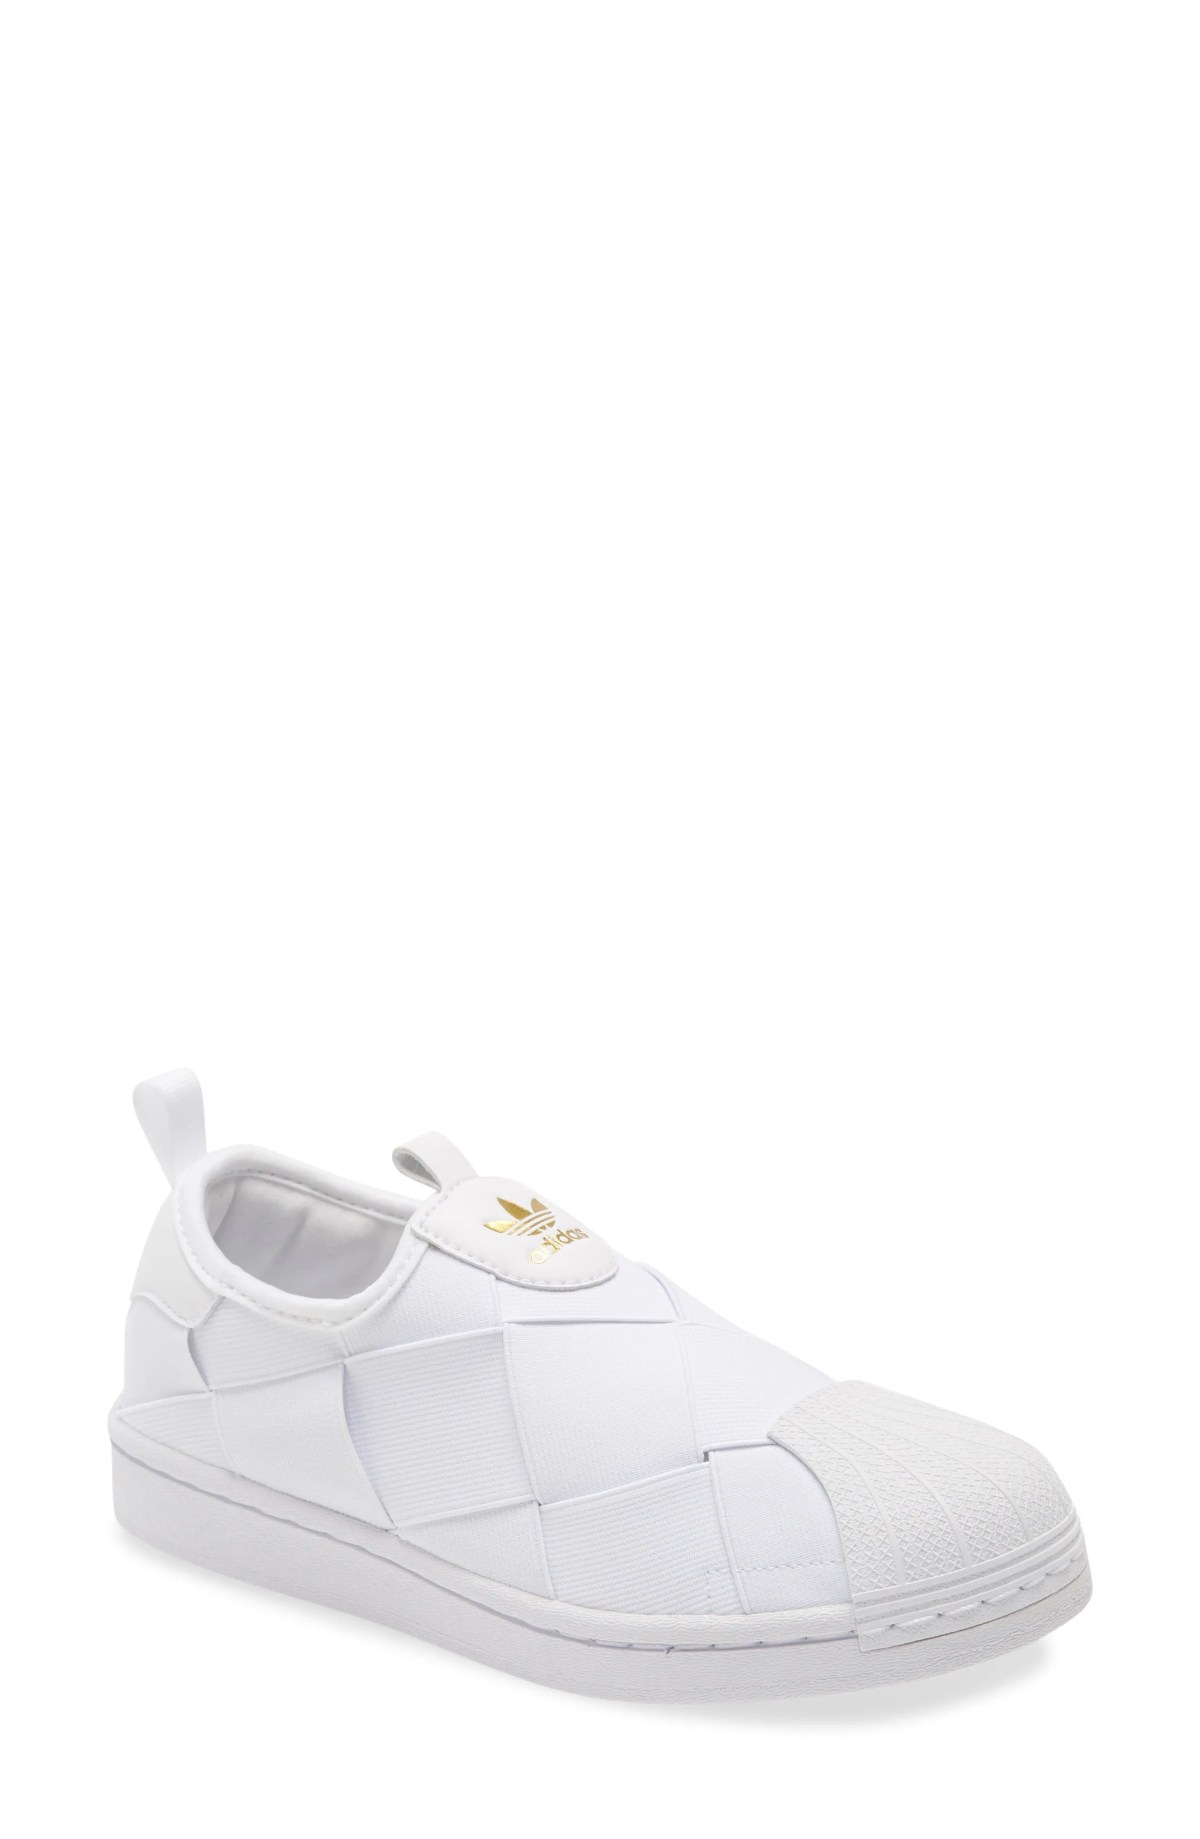 ADIDAS Superstar Slip-On Sneaker, Main, color, WHITE/ WHITE/ GOLD